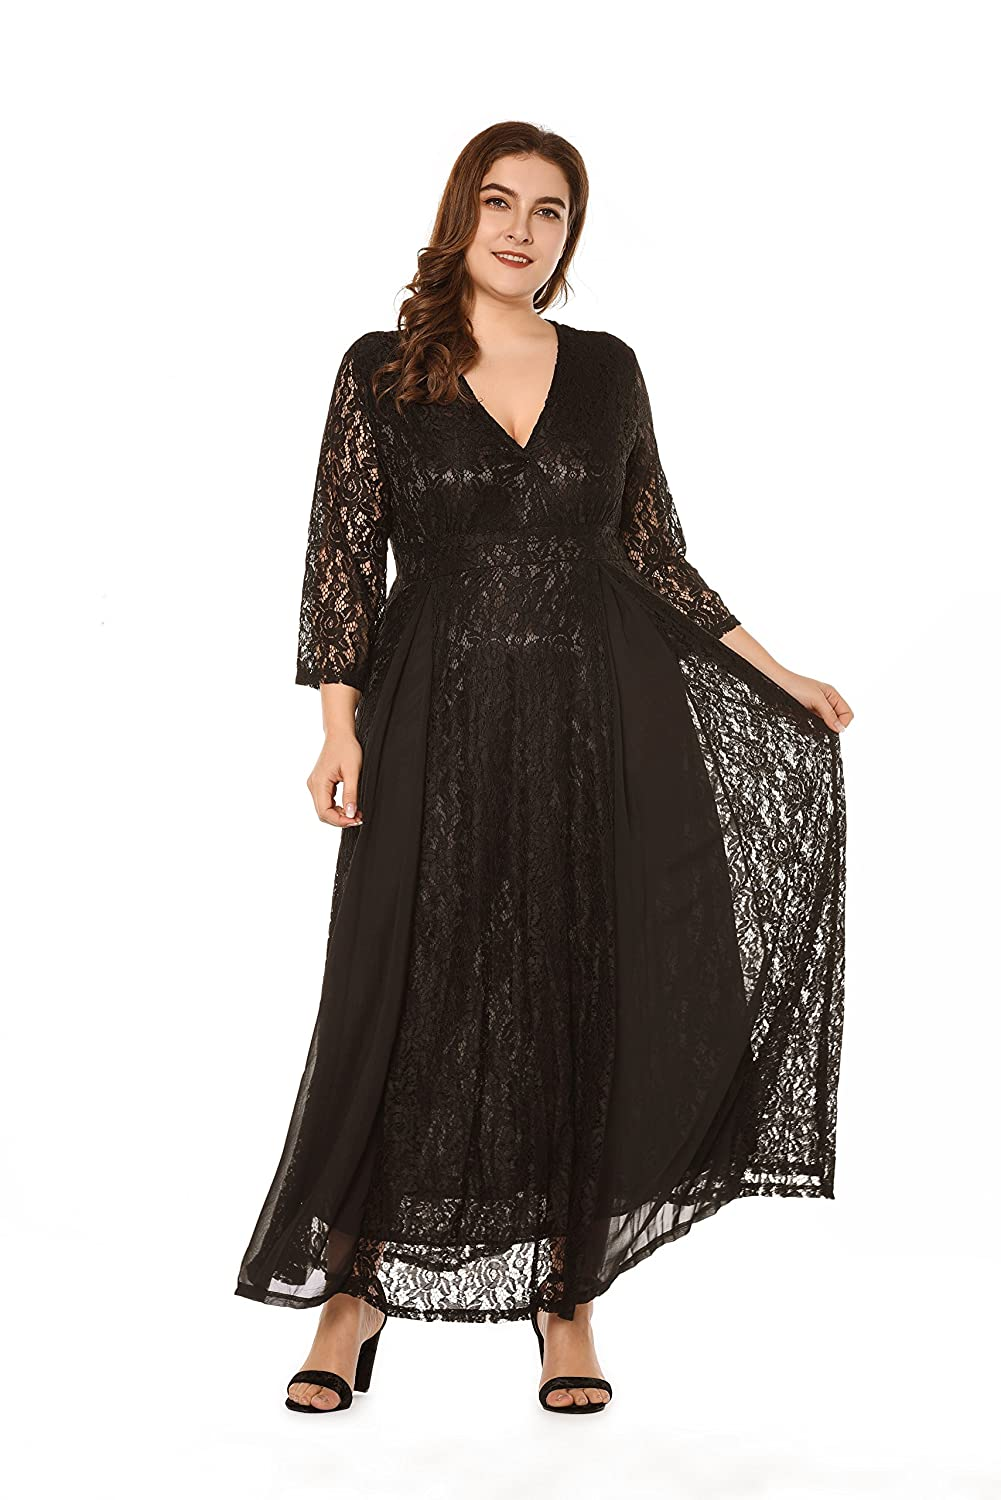 1950s Plus Size Dresses, Swing Dresses YISIBIA Womens Plus Size Vintage Floral Lace Dress High Waist Party Wedding Flowy Maxi Dresses $30.99 AT vintagedancer.com